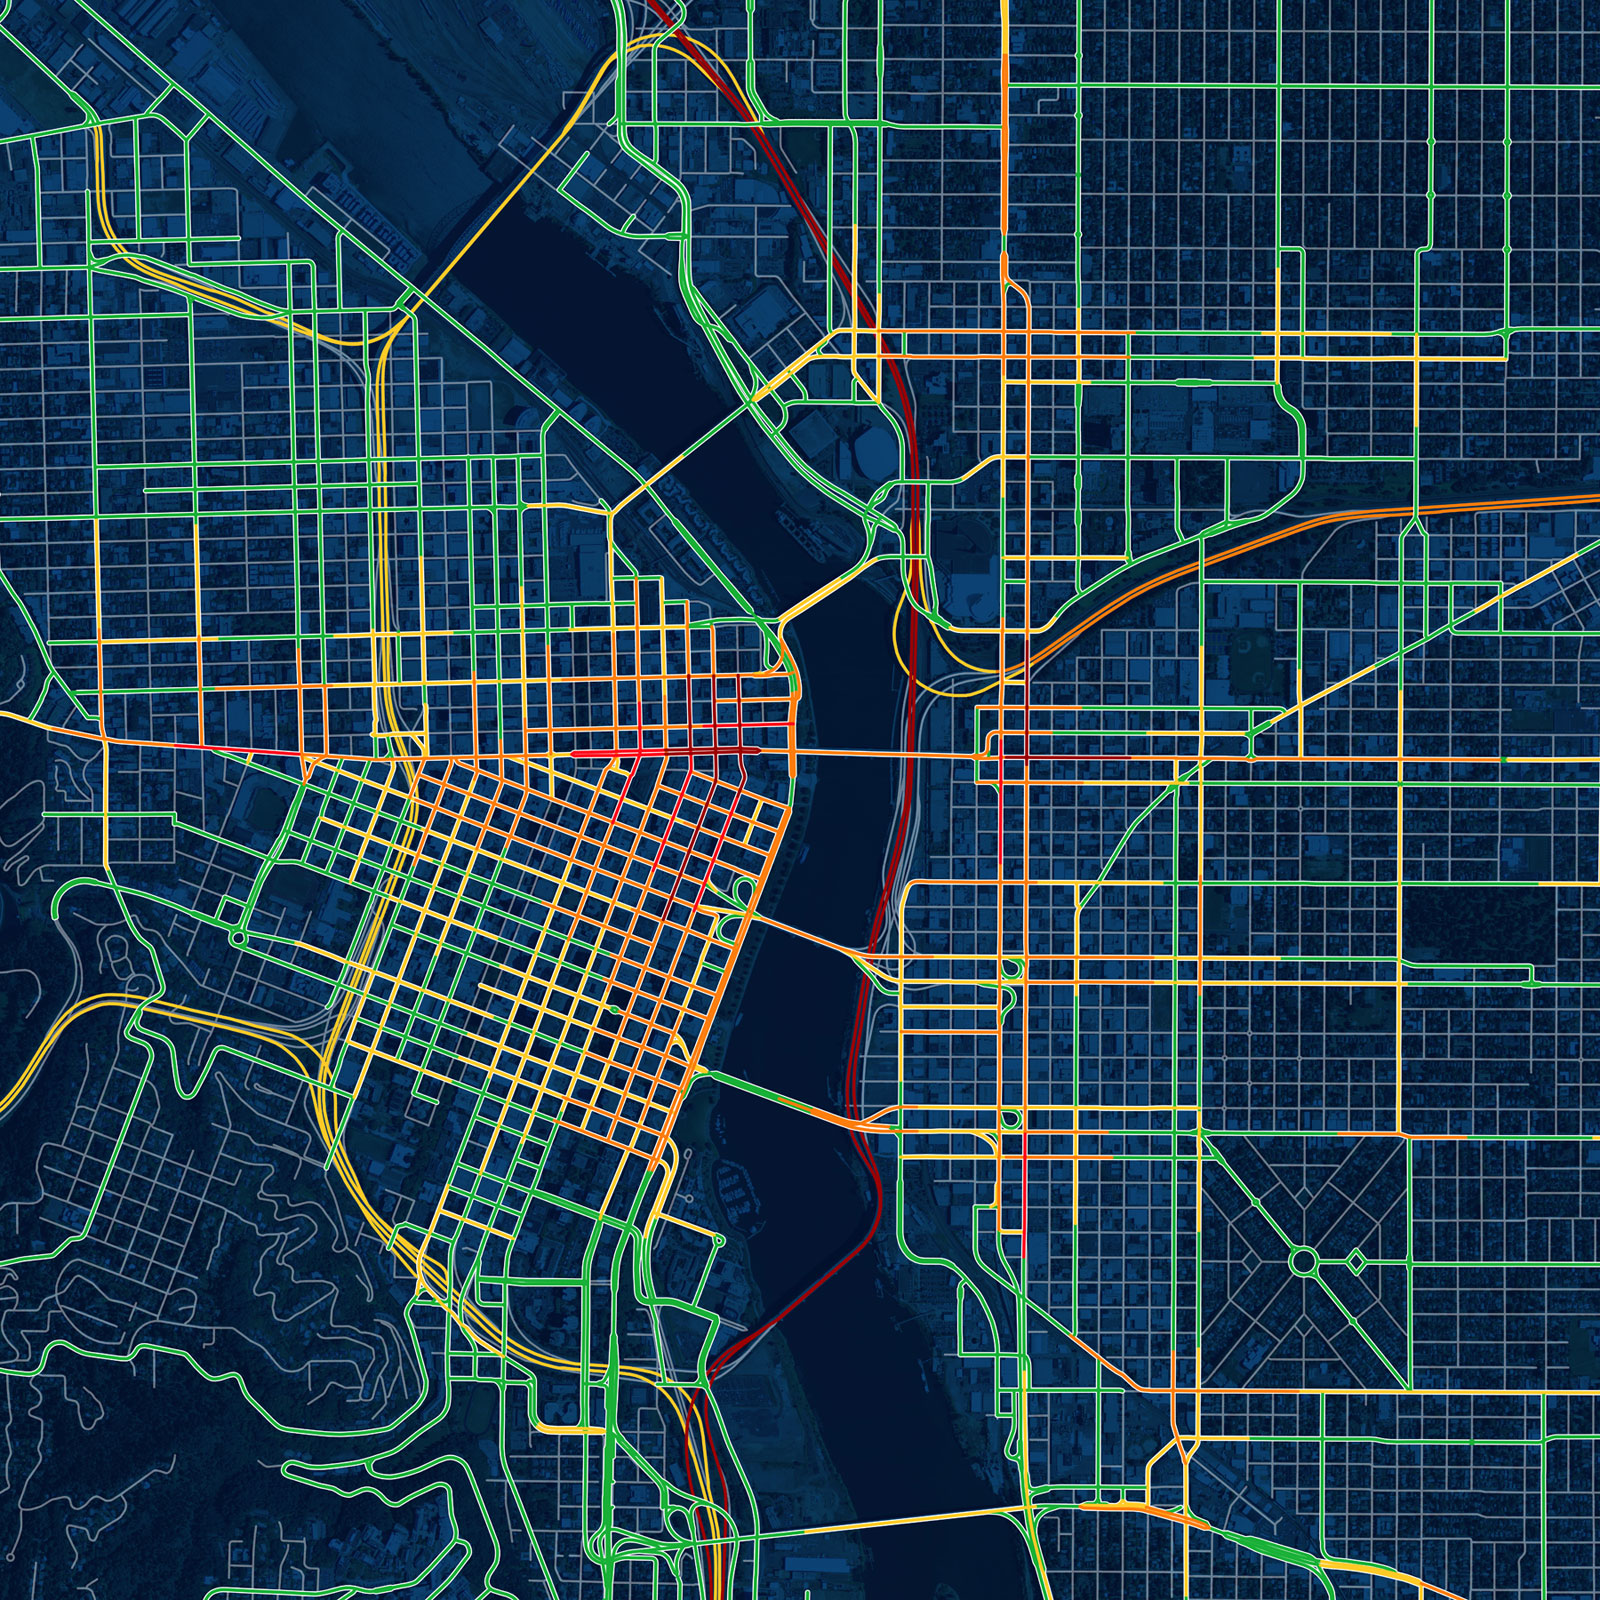 Drunk Traffic Map of Portland DUIs | Doug McCune